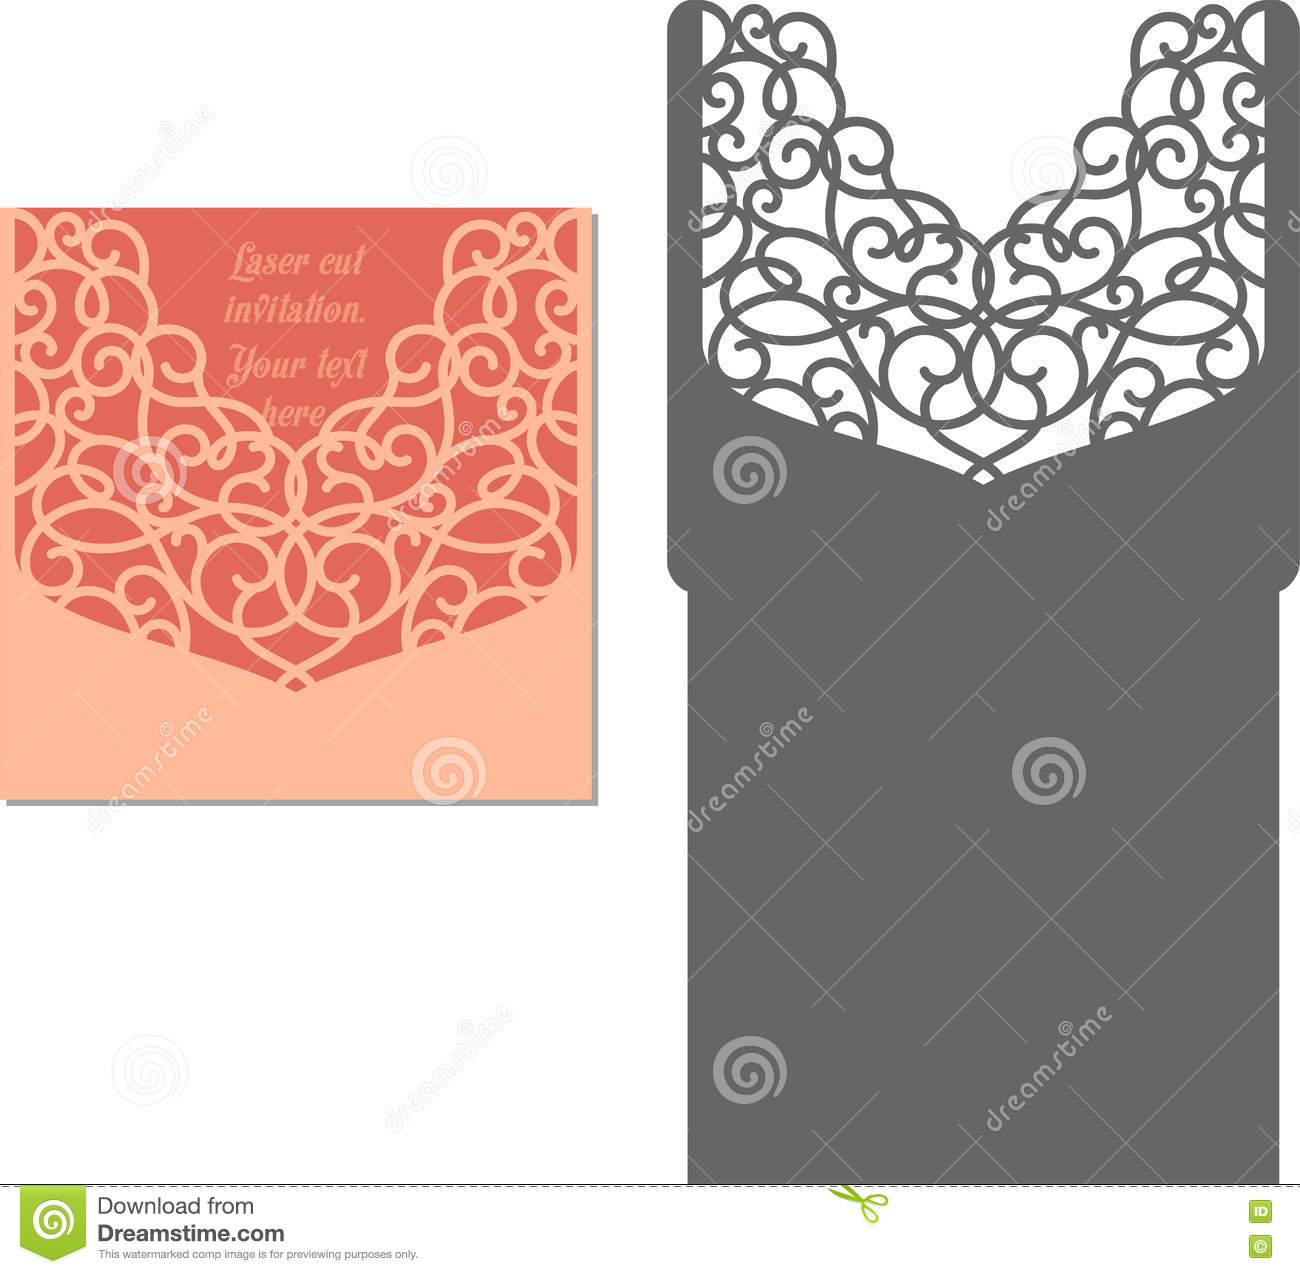 laser cut envelope template for invitation wedding card stock vector image 72590418. Black Bedroom Furniture Sets. Home Design Ideas